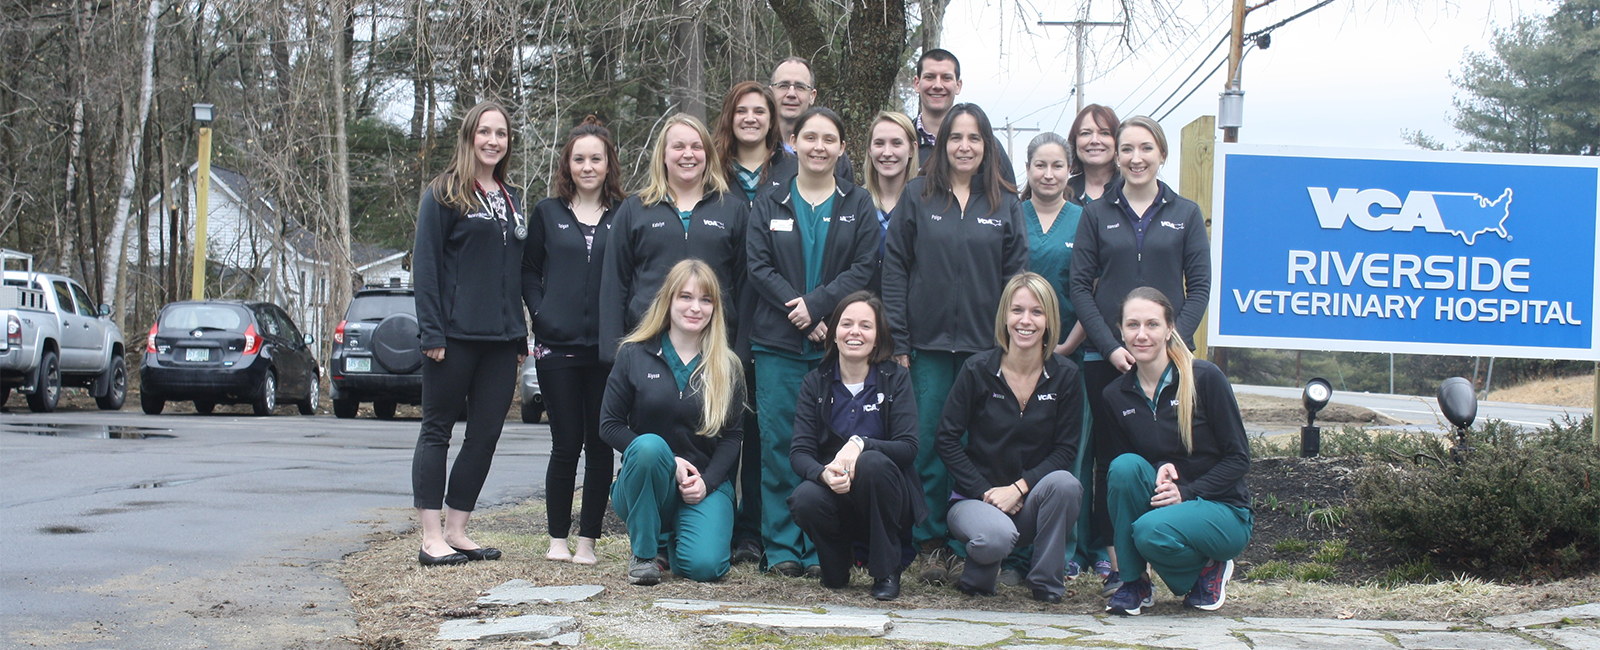 Homepage Team Picture of VCA Riverside Veterinary Hospital